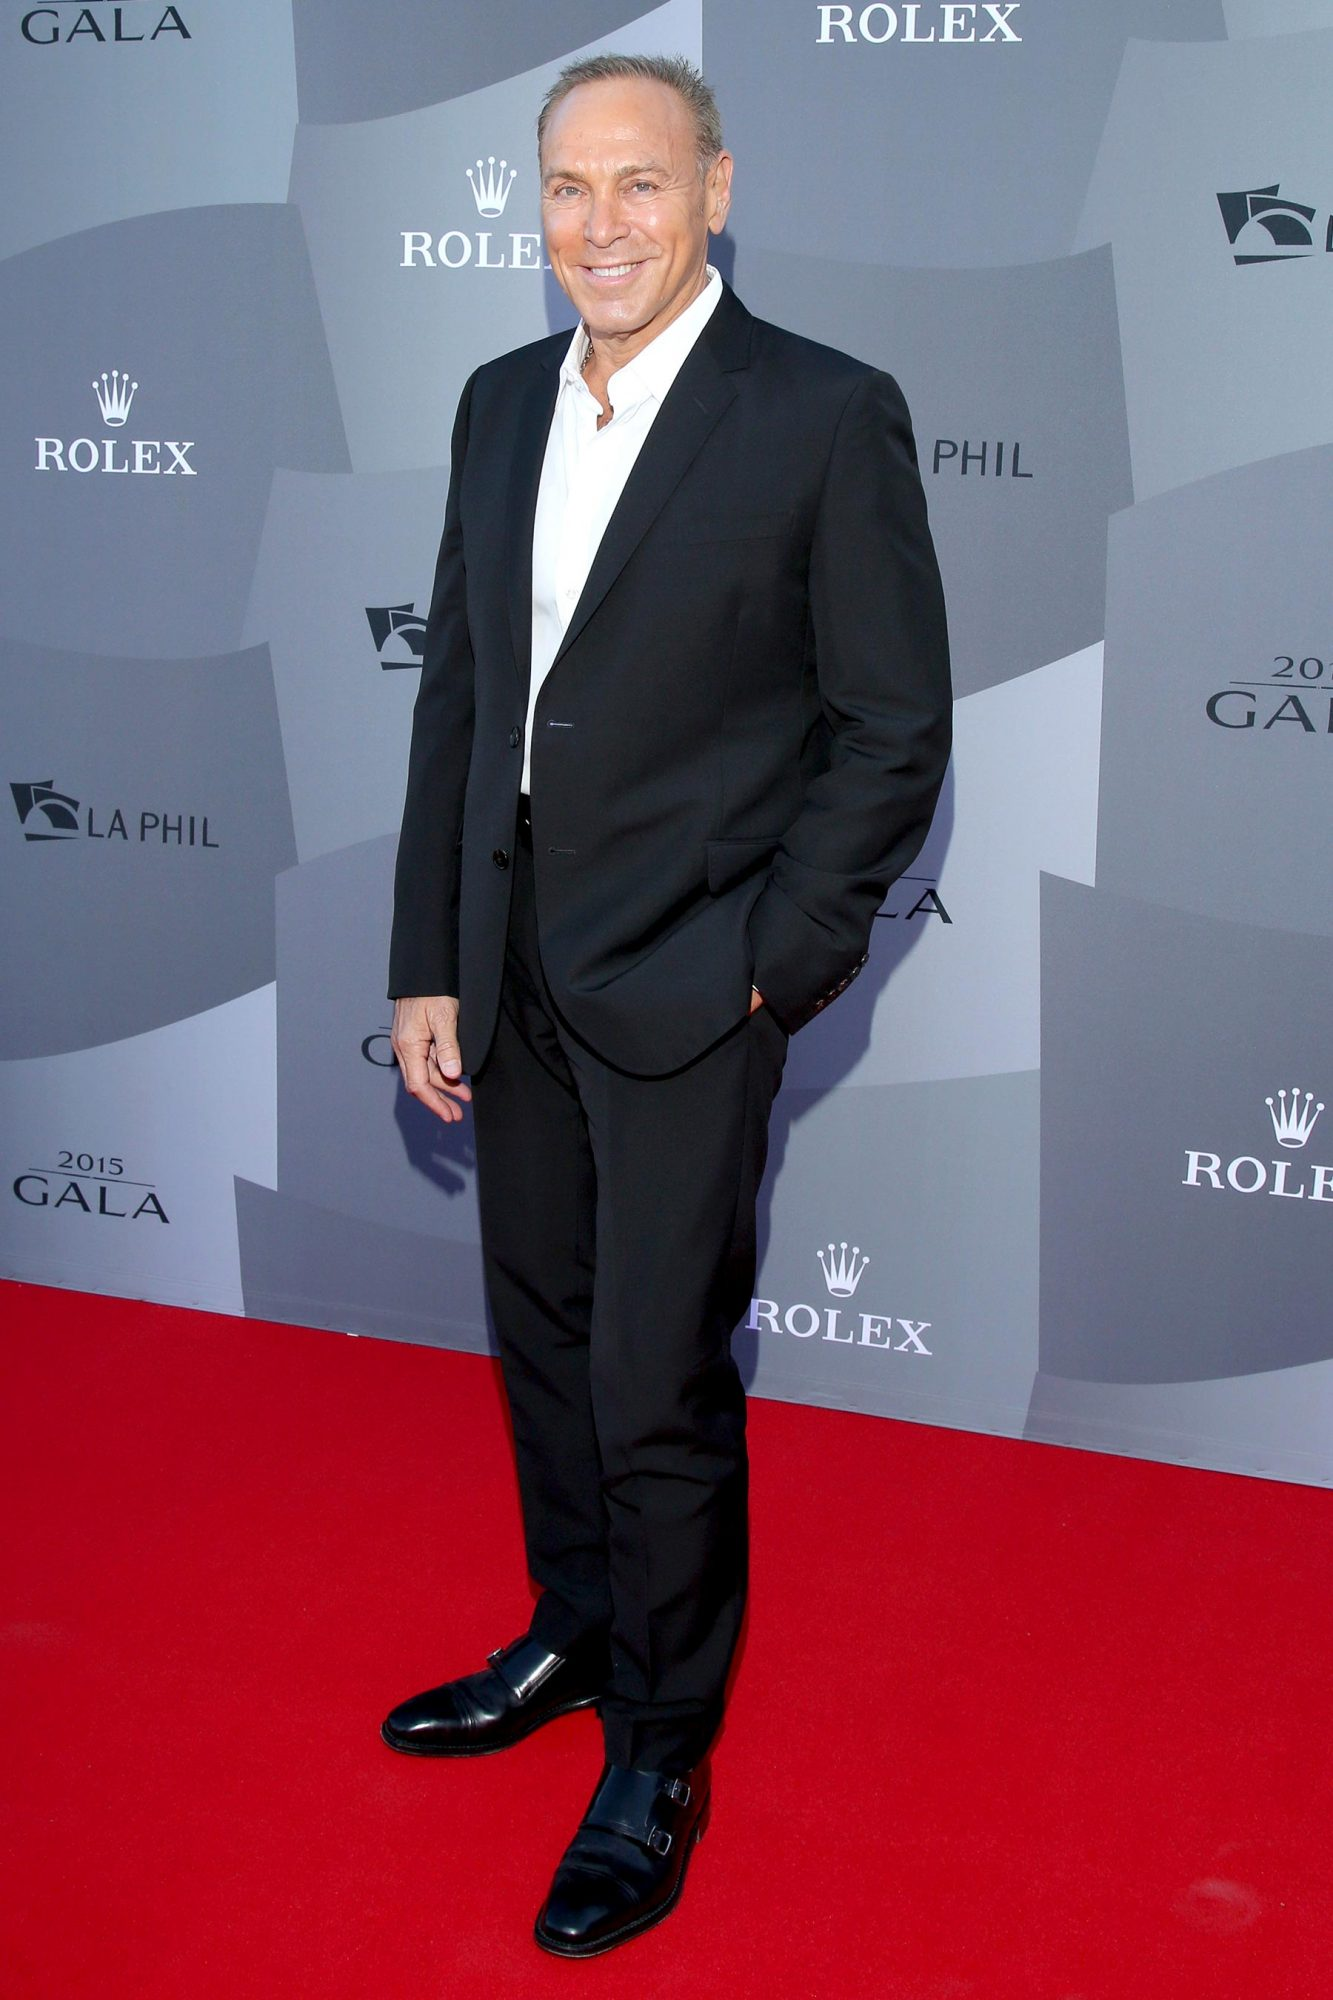 Los Angeles Philharmonic's Walt Disney Concert Hall Opening Night Gala - Red Carpet Arrivals